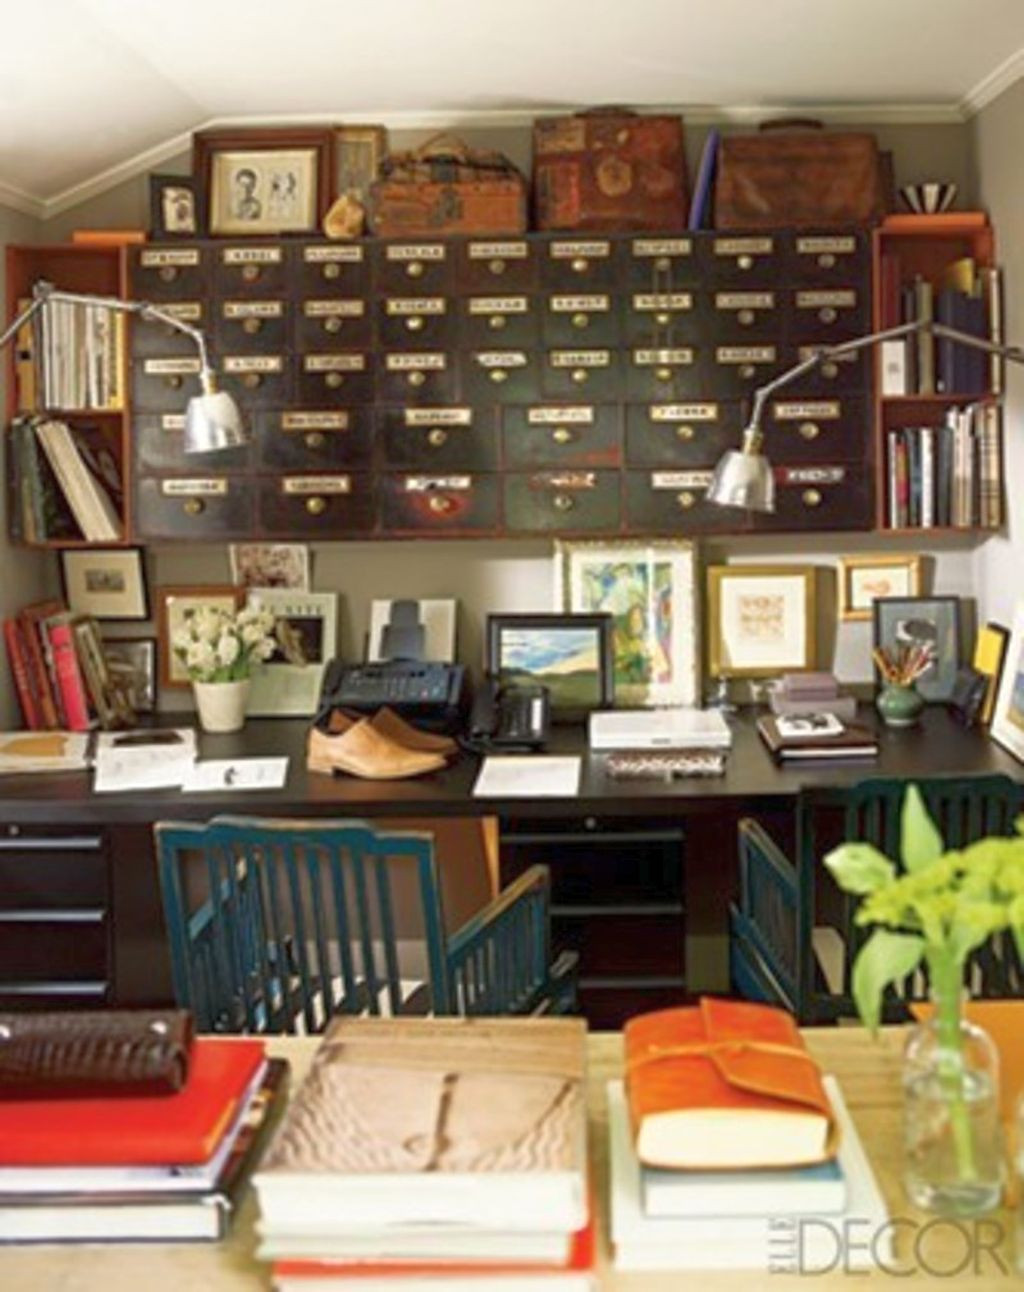 Best ideas about Decorating Small Office Space . Save or Pin 20 Inspiring Home fice Design Ideas for Small Spaces Now.